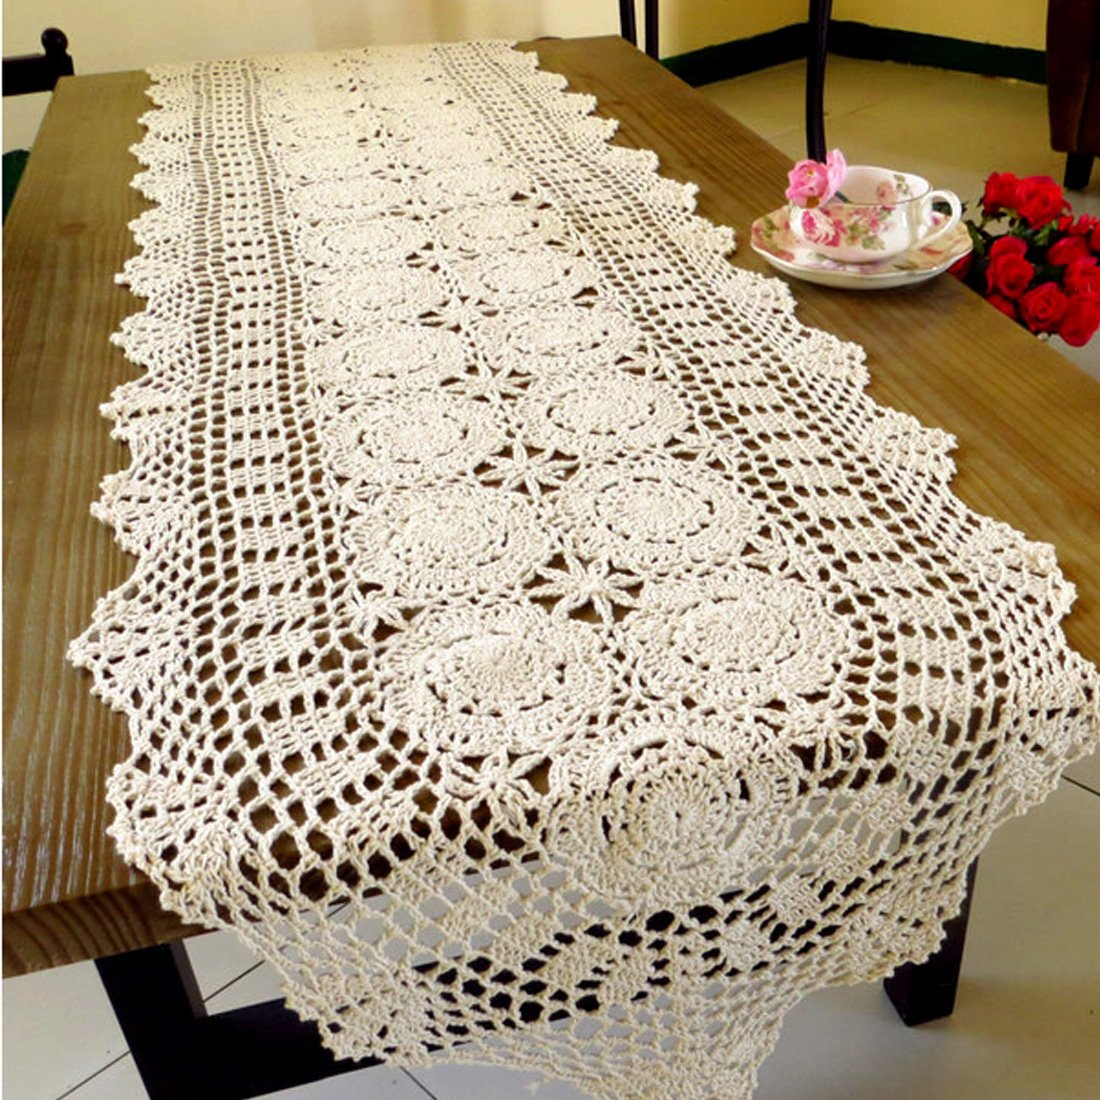 Pa.an Crochet Table Runner Handmade Handicrafts Classic Lace Tablecloth Beige White Table Cover Dropshipping 2019 Decor Gifts